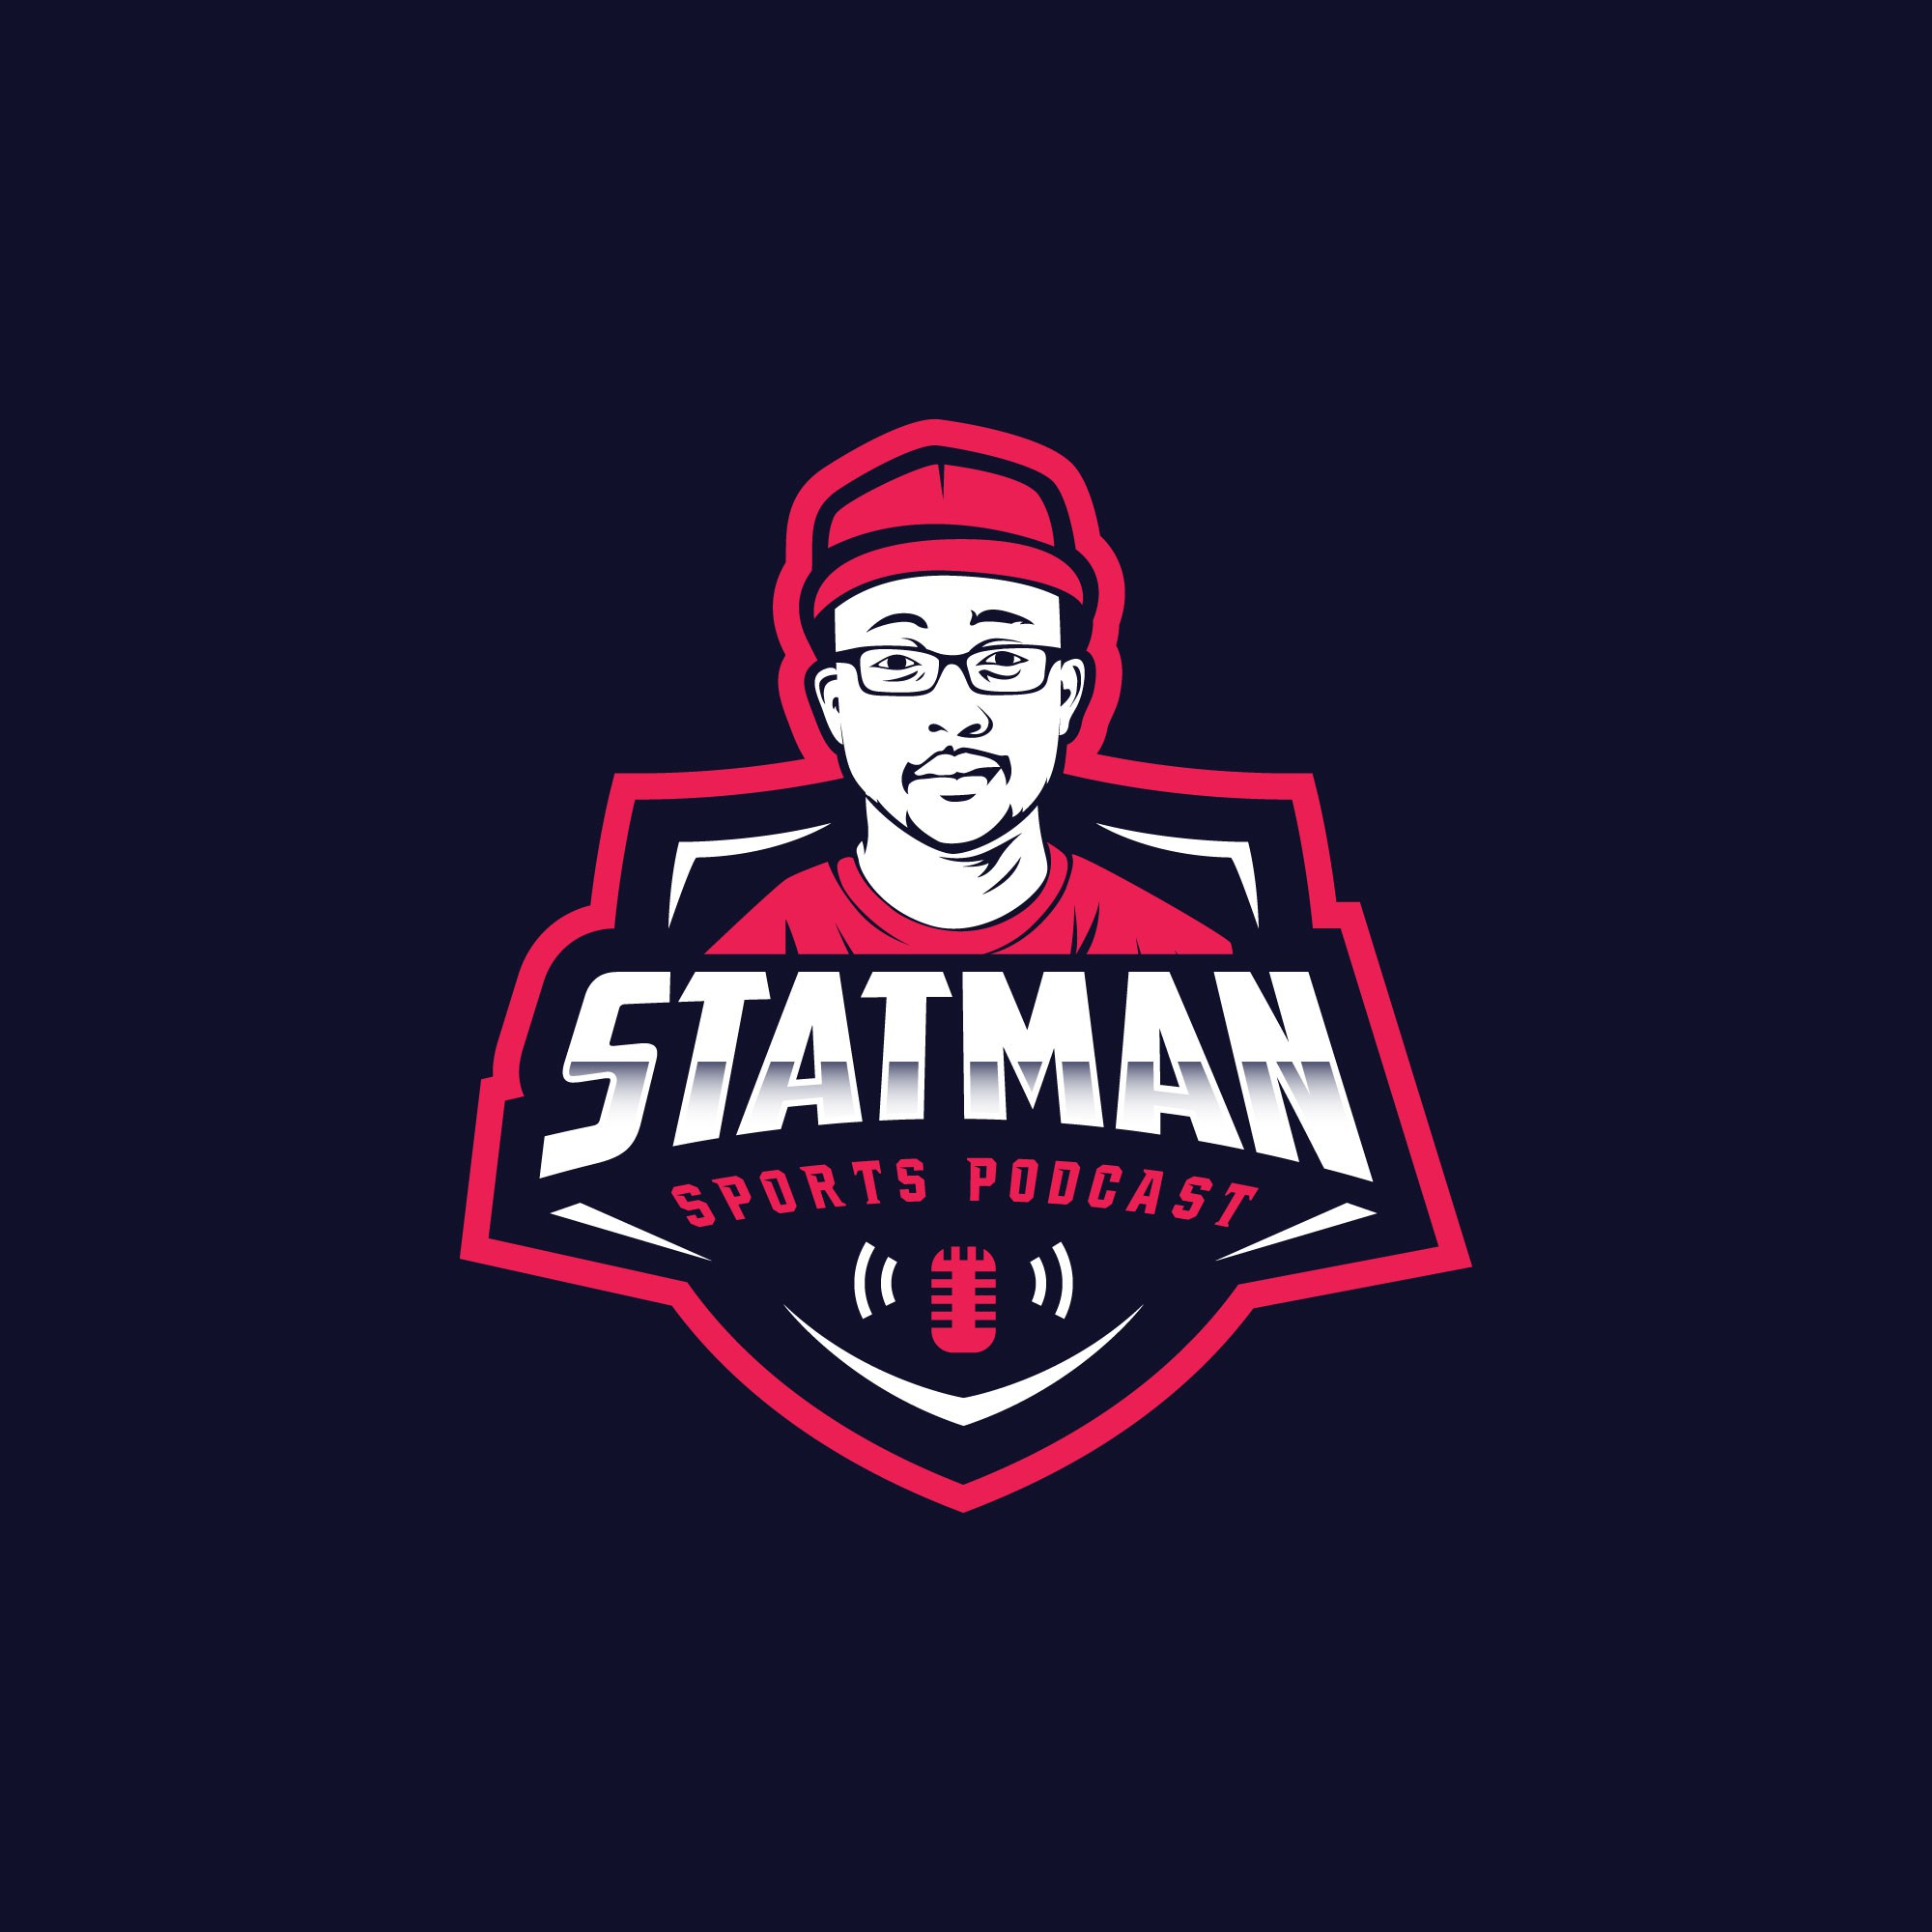 StatMan Sports Podcast looking for impactful Logo